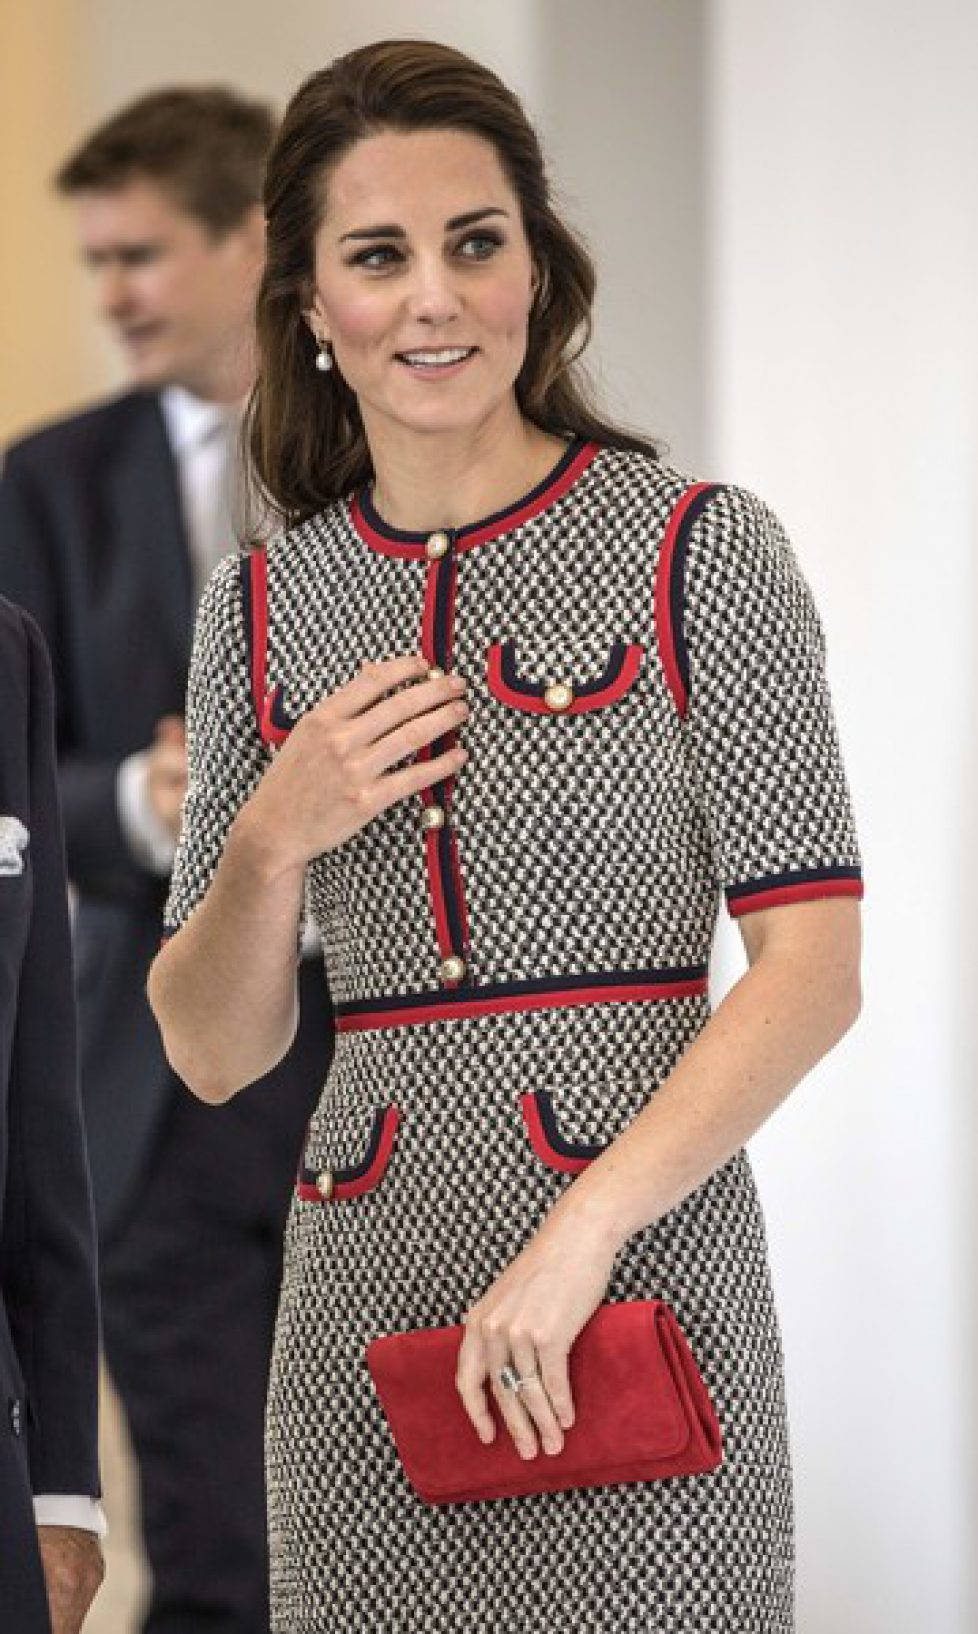 Duchess+Cambridge+Visits+New+V+Exhibition+MBQycNZ5MT7l